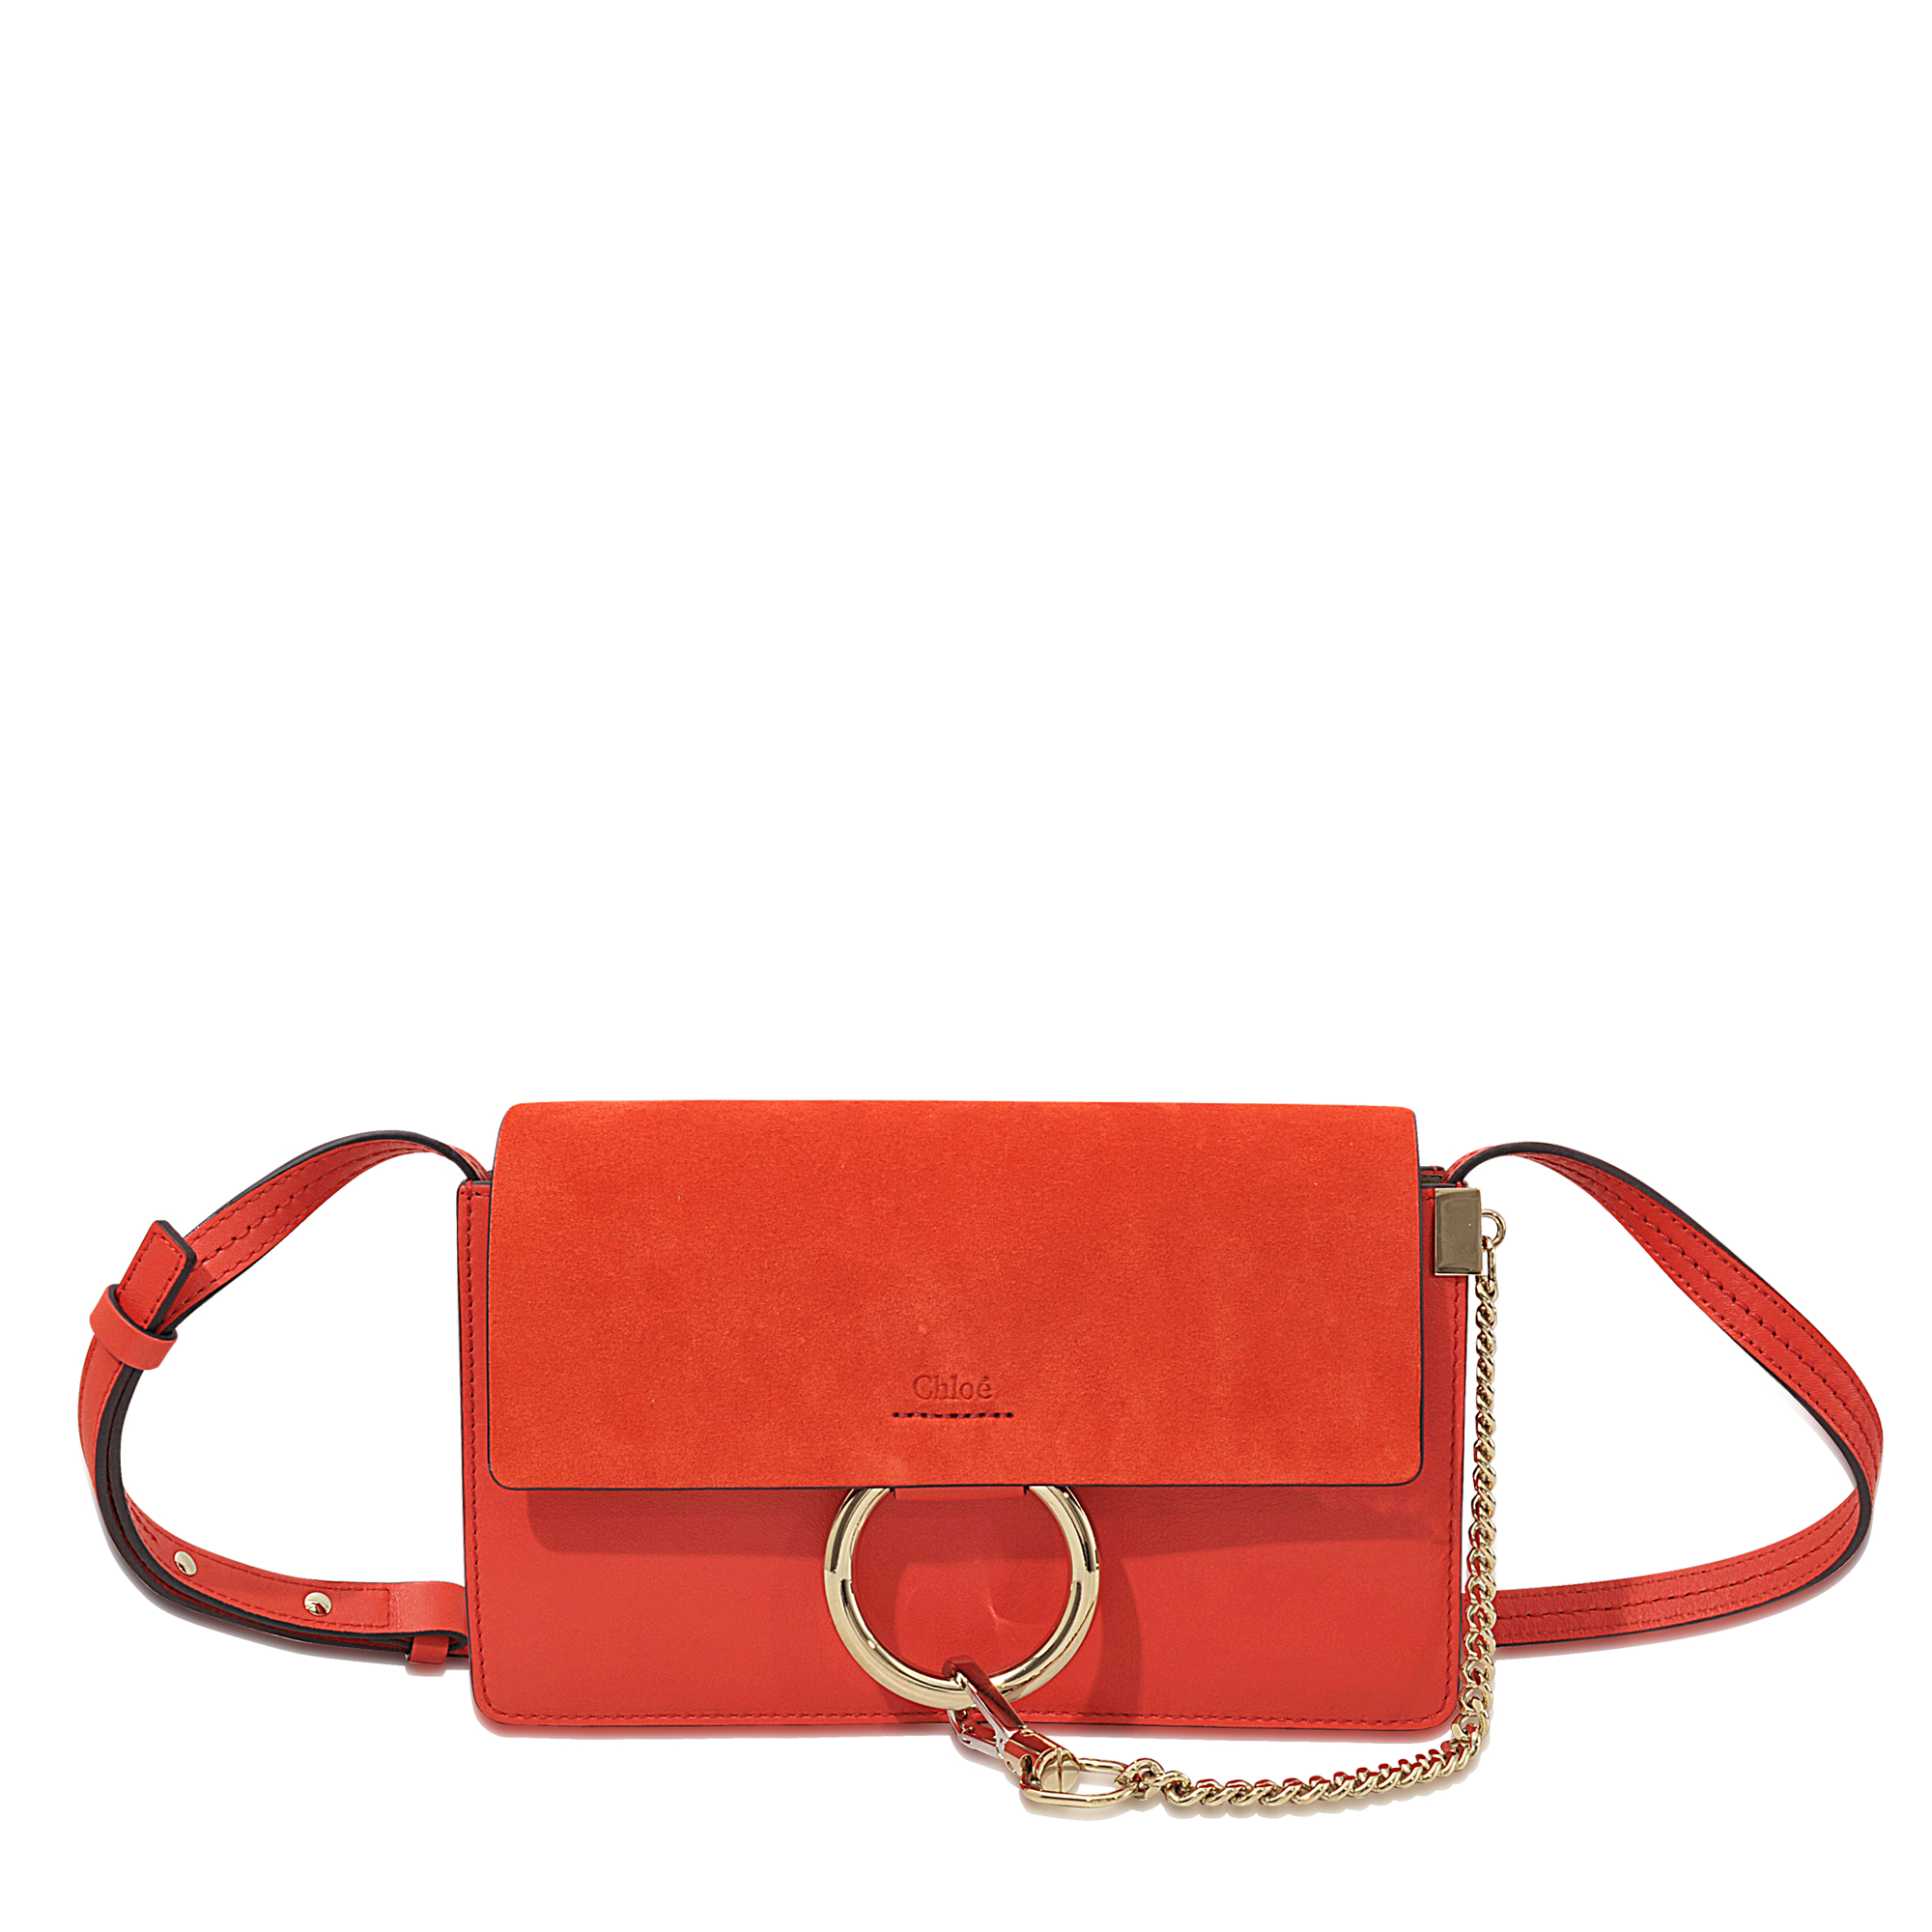 Chloé Faye Leather Cross-Body Bag in Red